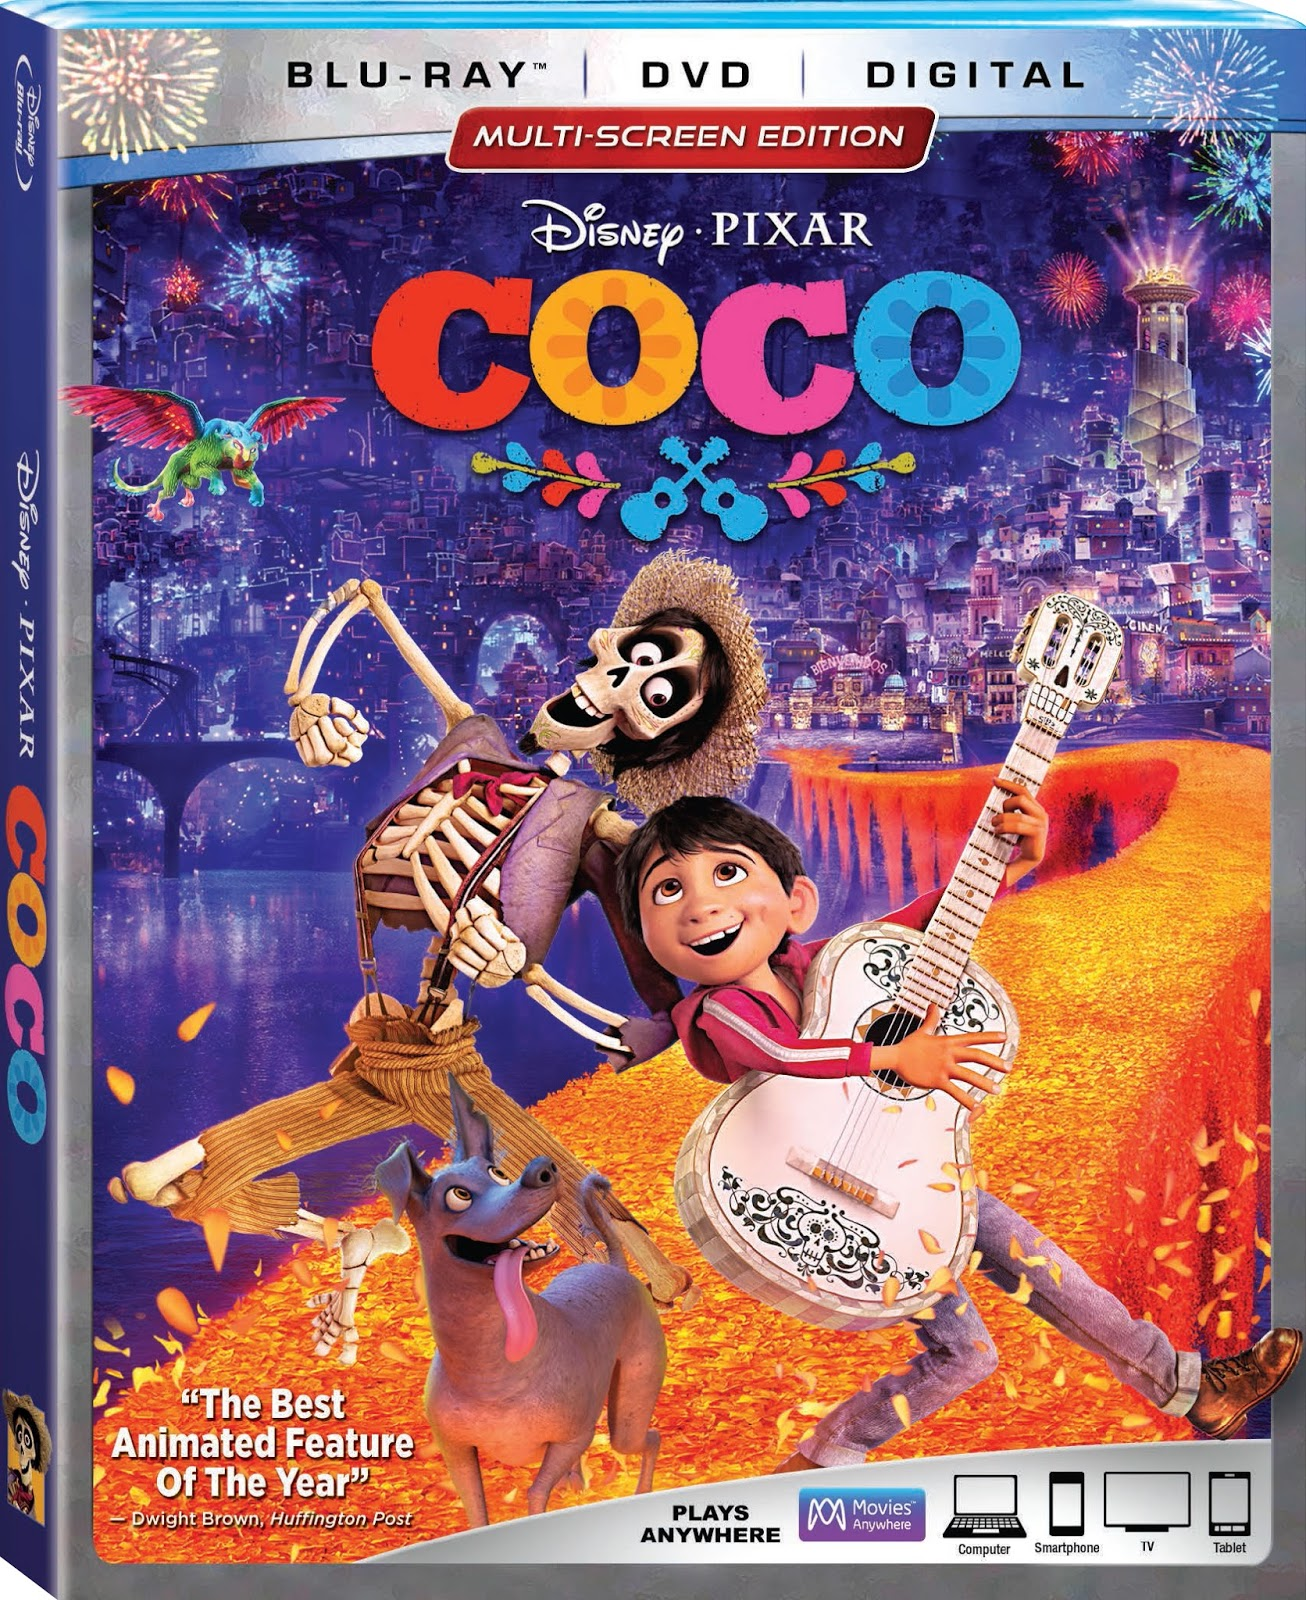 Coco Blu-ray Box Art